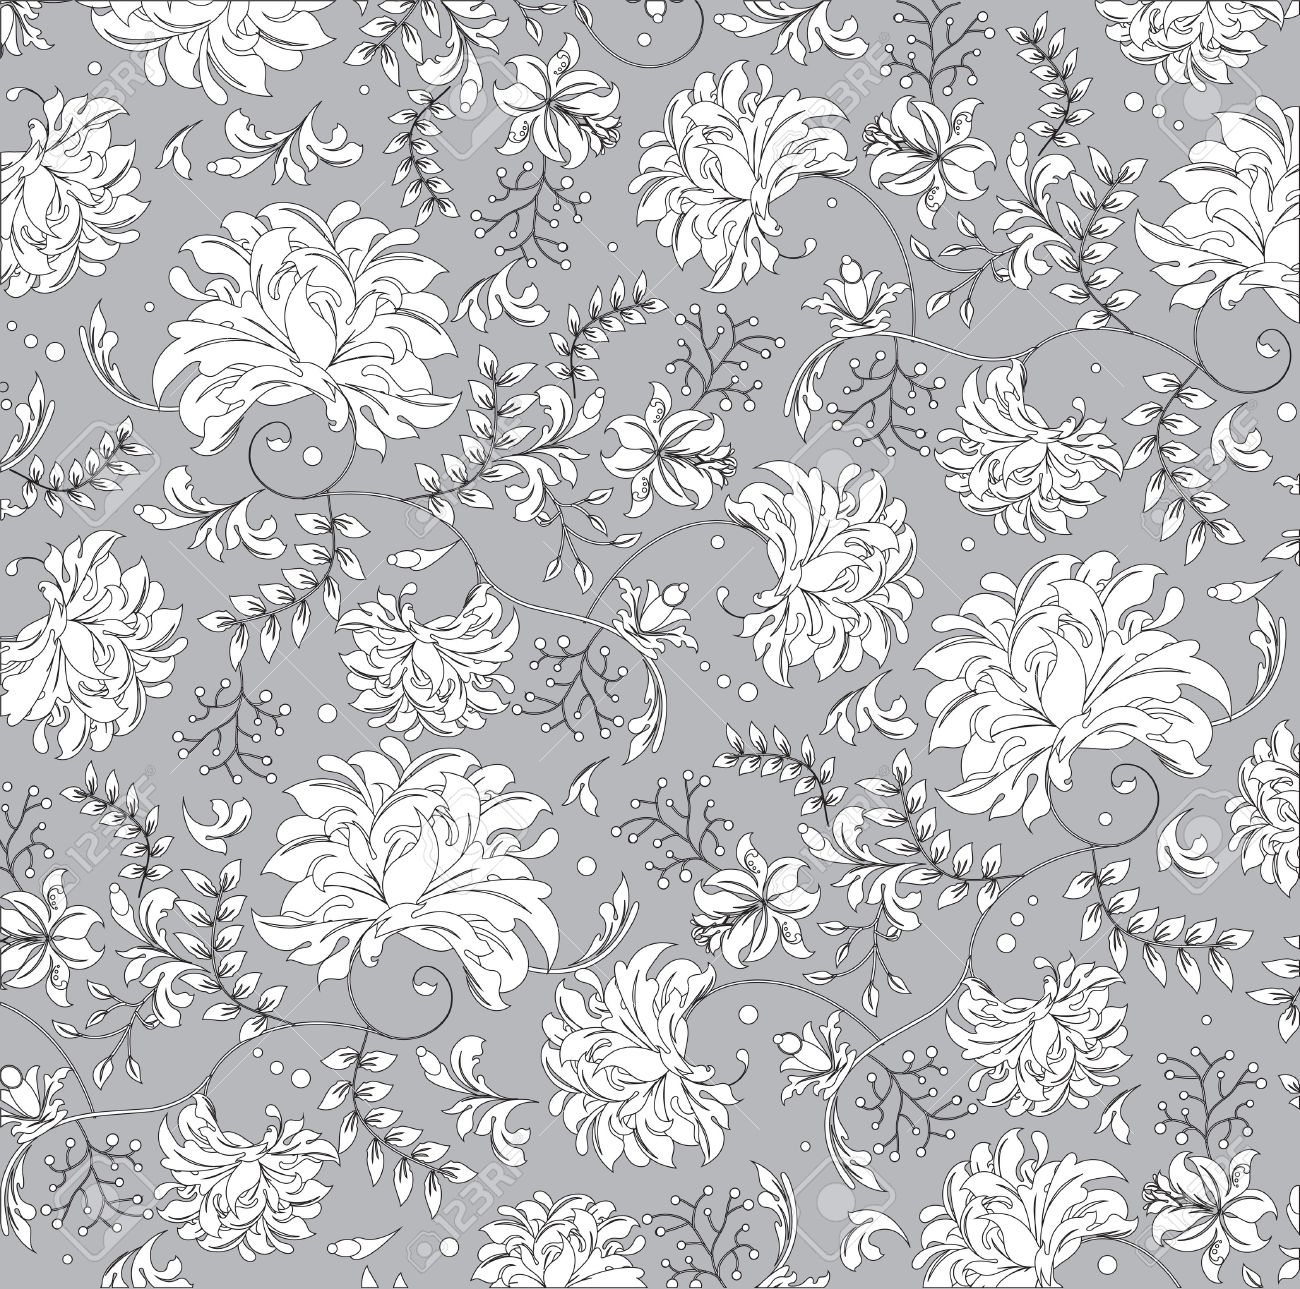 Vintage Background With Ornate Elegant Abstract Floral Design White Flowers On Gray Vector Illustration